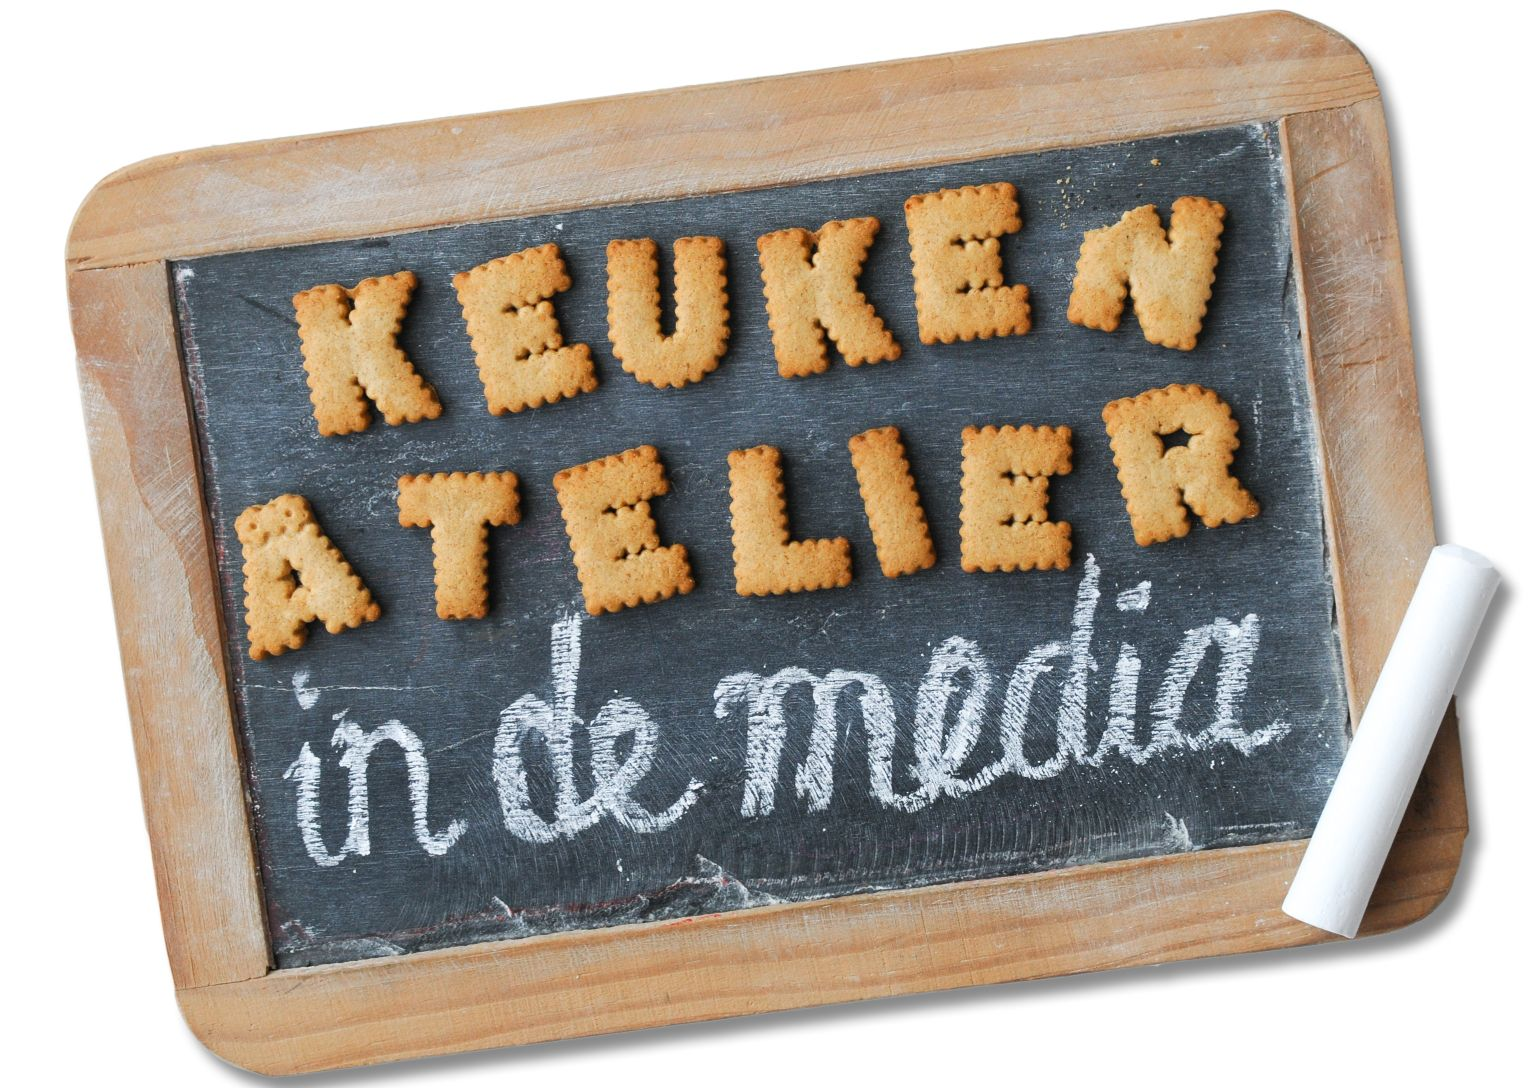 KeukenAtelier in de media